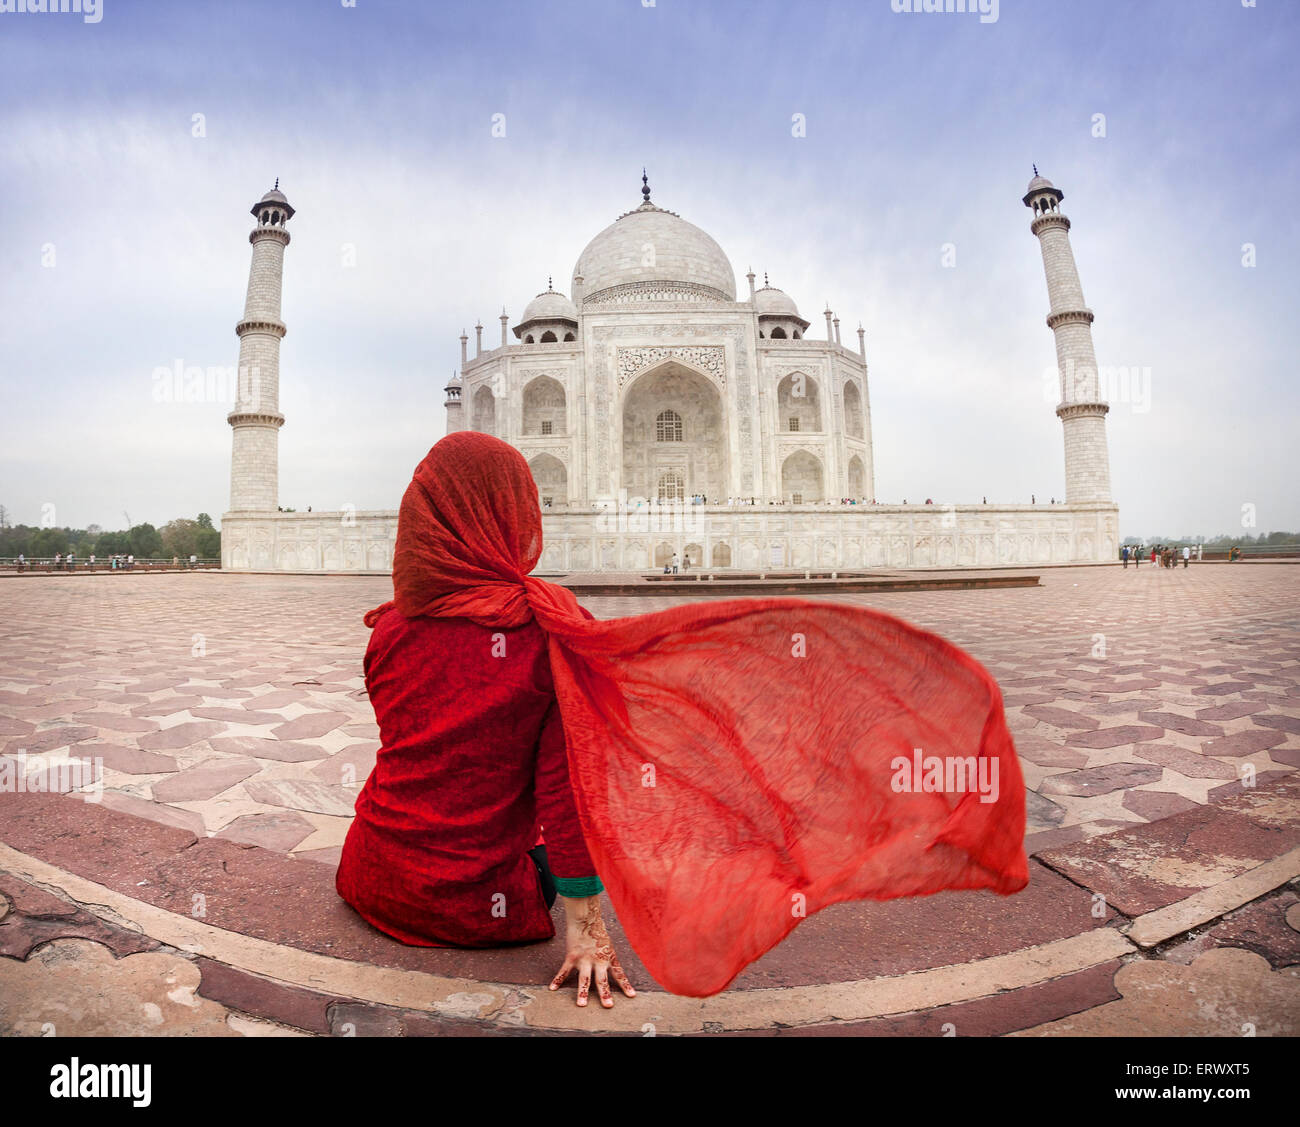 Woman in red costume with flattering scarf sitting near Taj Mahal in Agra, Uttar Pradesh, India - Stock Image